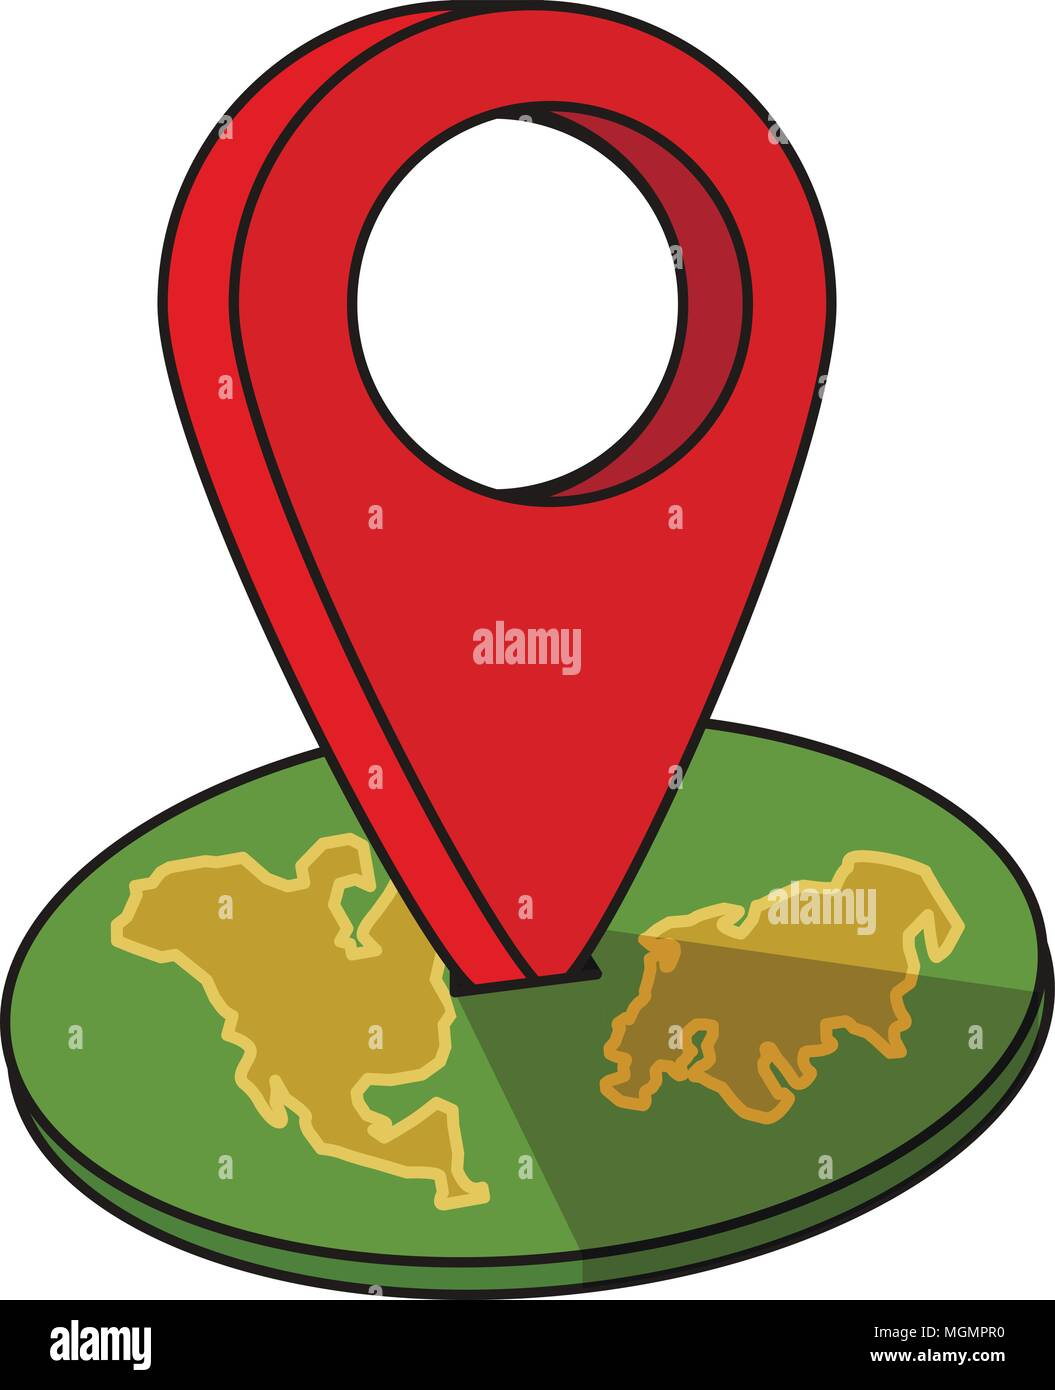 Around the world travelling by plane airplane trip in various around the world travelling by plane airplane trip in various country travel pin location on a global map flat icon modern design style vector illu gumiabroncs Images